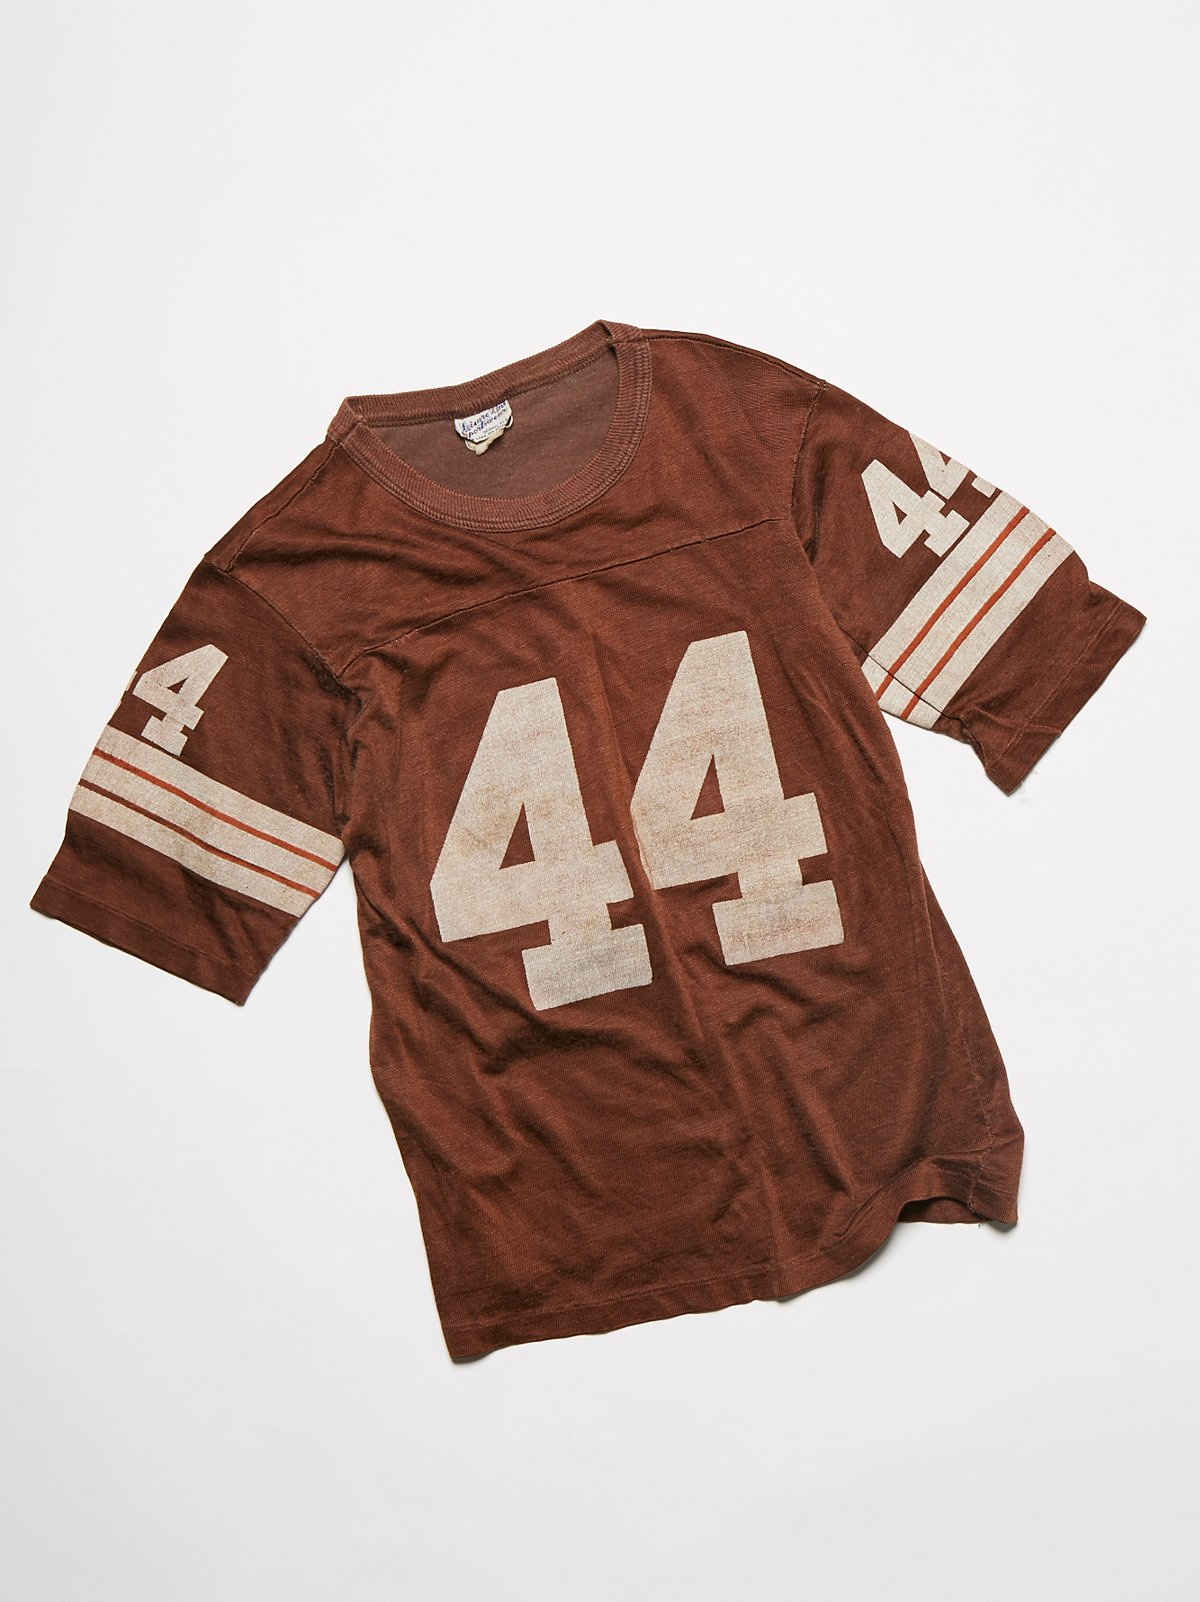 Vintage 1970s Football Jersey